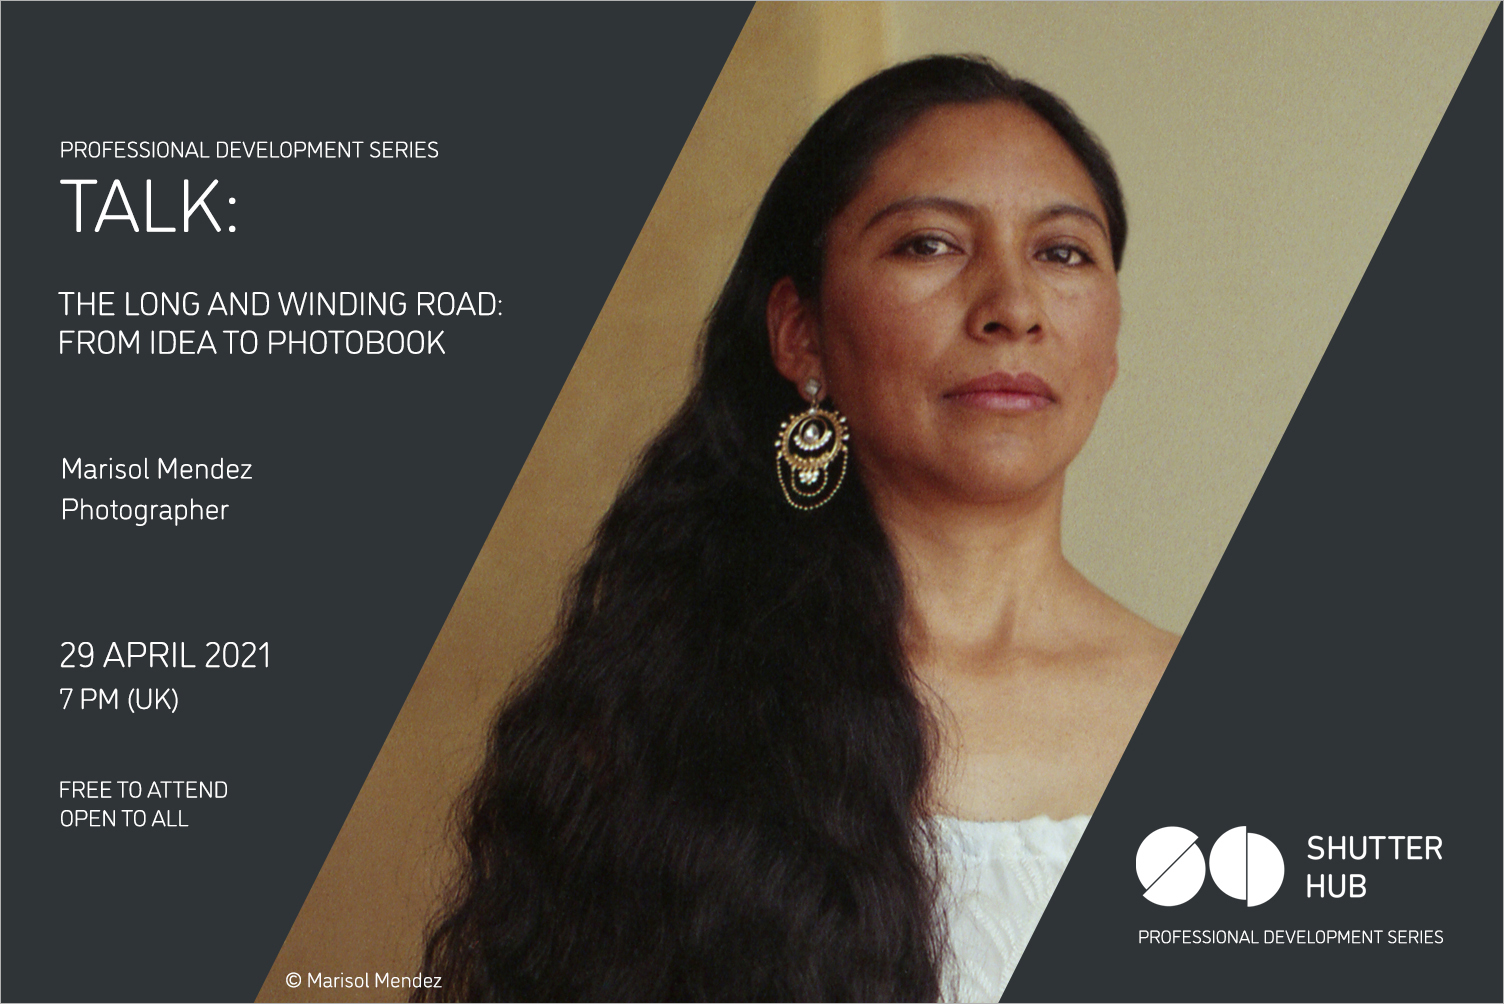 Graphic with the words 'Professional Development Series, TALK:, The long and winding road: from idea to photobook, Marisol Mendez, Photographer, 29 April 2021, 7pm (UK), Free to attend, open to all' A portrait of a woman looking at the camera, wearing an ornate earring and with long wavy dark hair is in the centre, with '© Marisol Mendez' below, and the Shutter Hub logo is at the bottom right with 'Professional Development Series' written below.